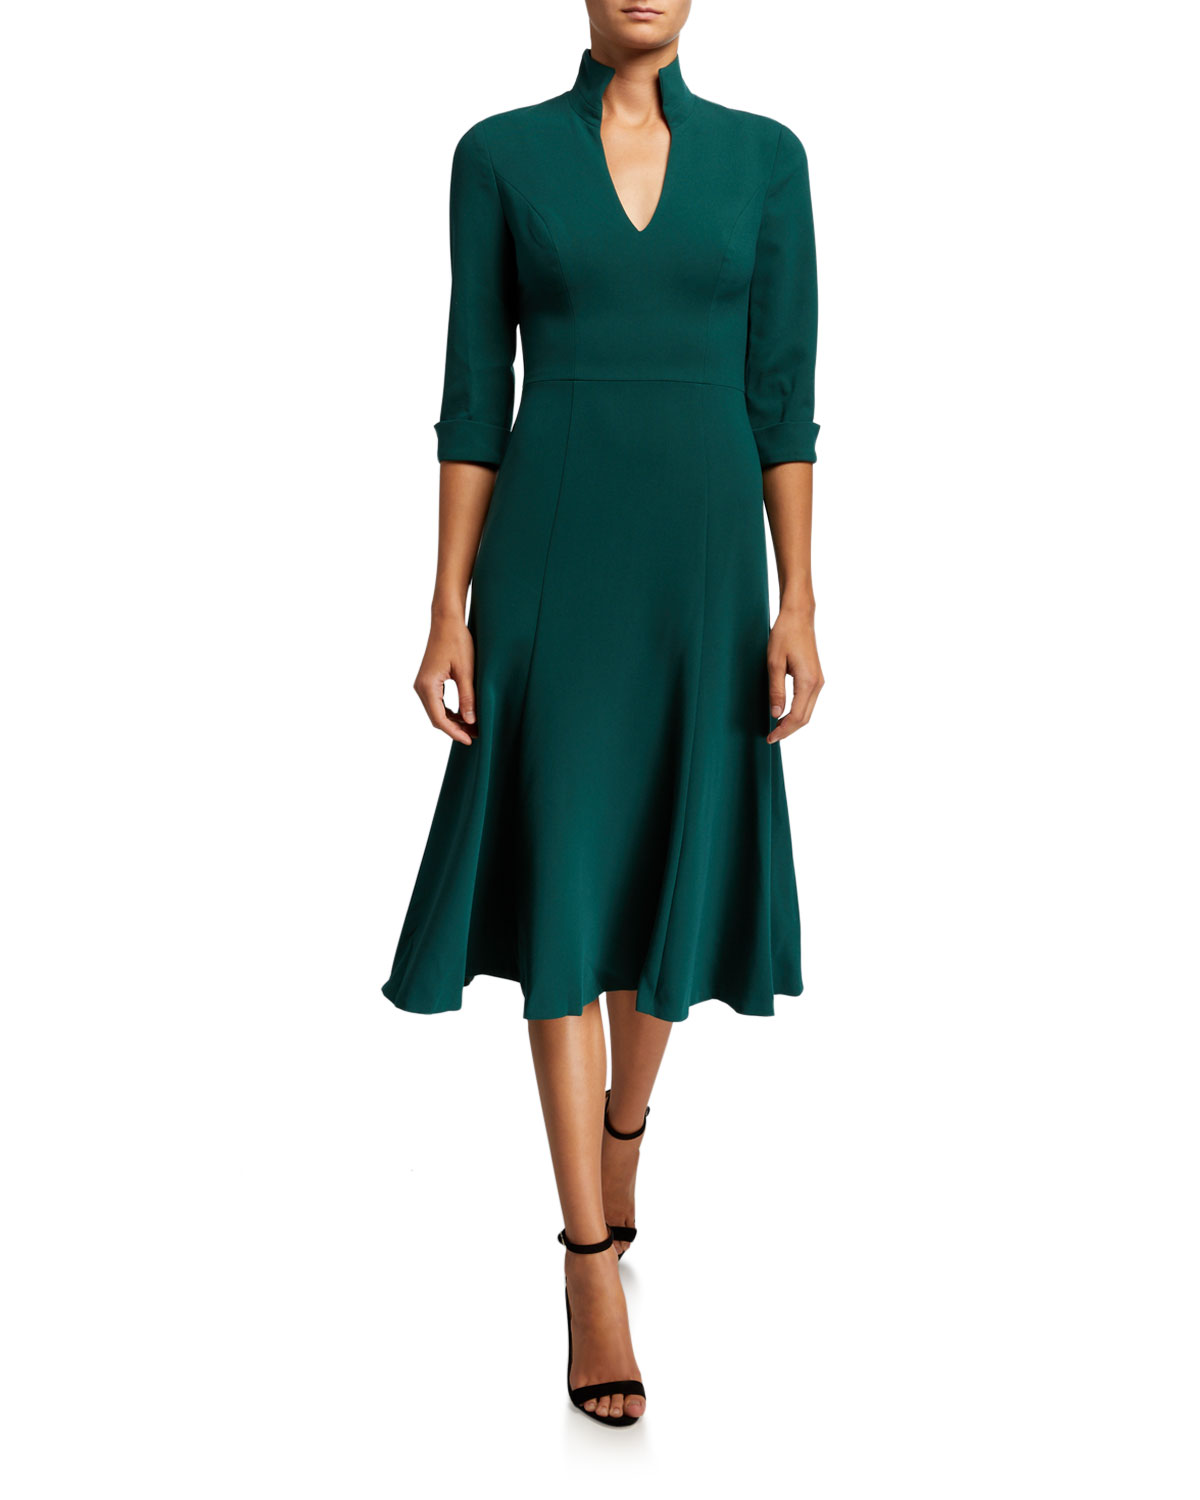 3/4 Sleeve Open Collar Midi Dress by Black Halo